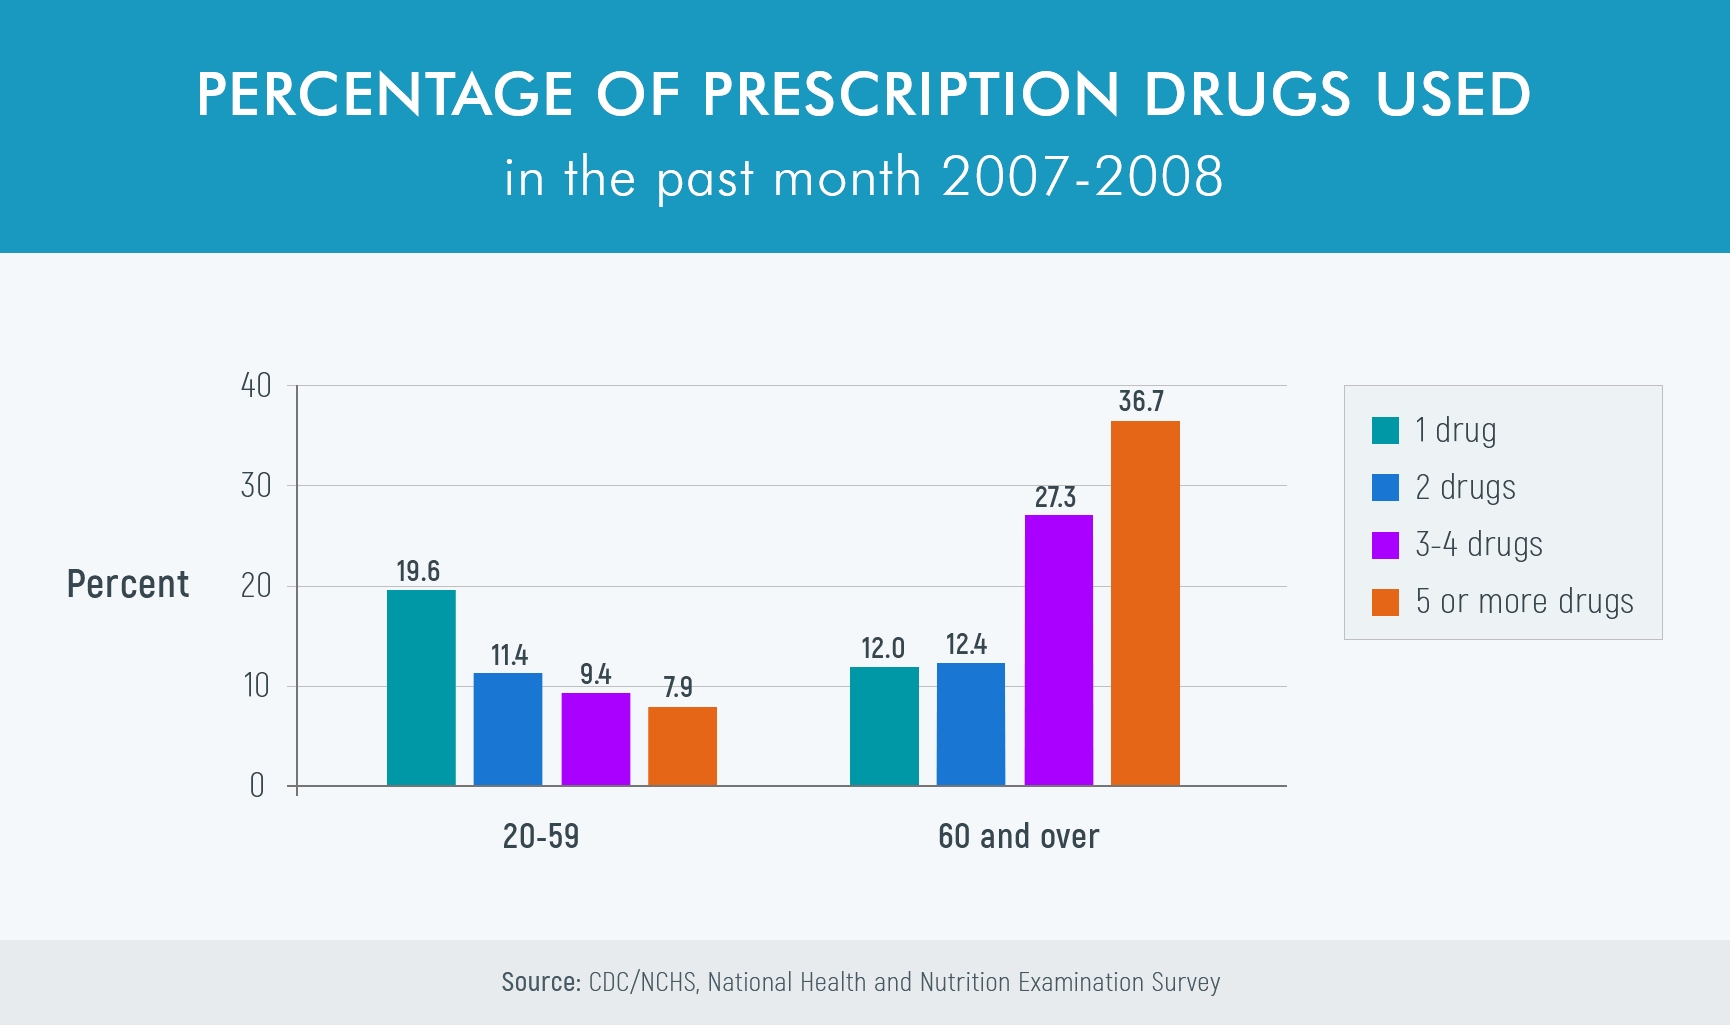 Percentage of prescription drugs used in the past month 2007-2008 in seniors chart